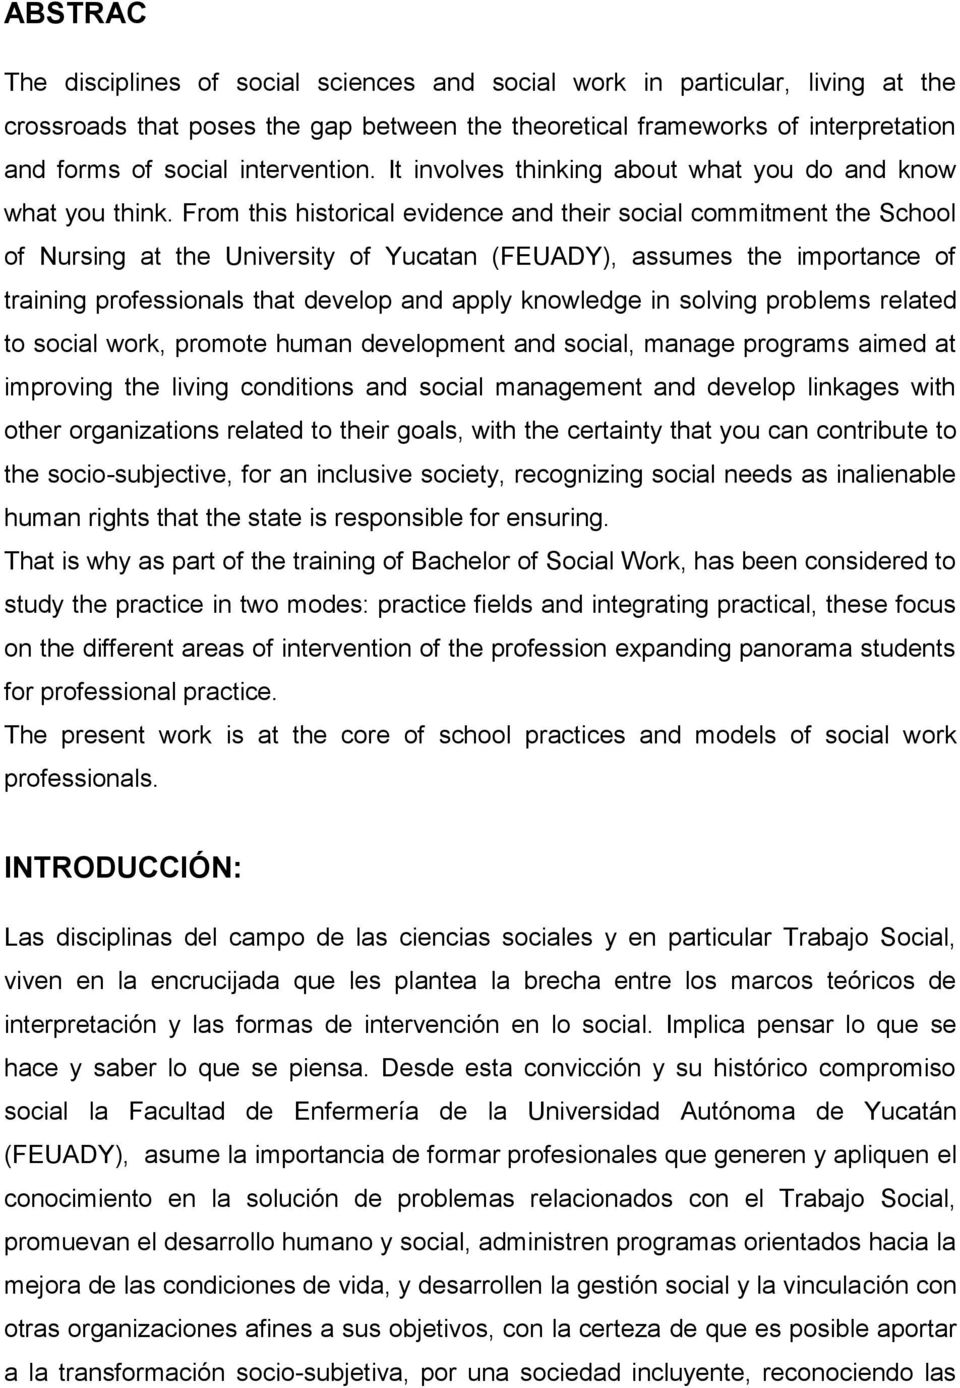 From this historical evidence and their social commitment the School of Nursing at the University of Yucatan (FEUADY), assumes the importance of training professionals that develop and apply